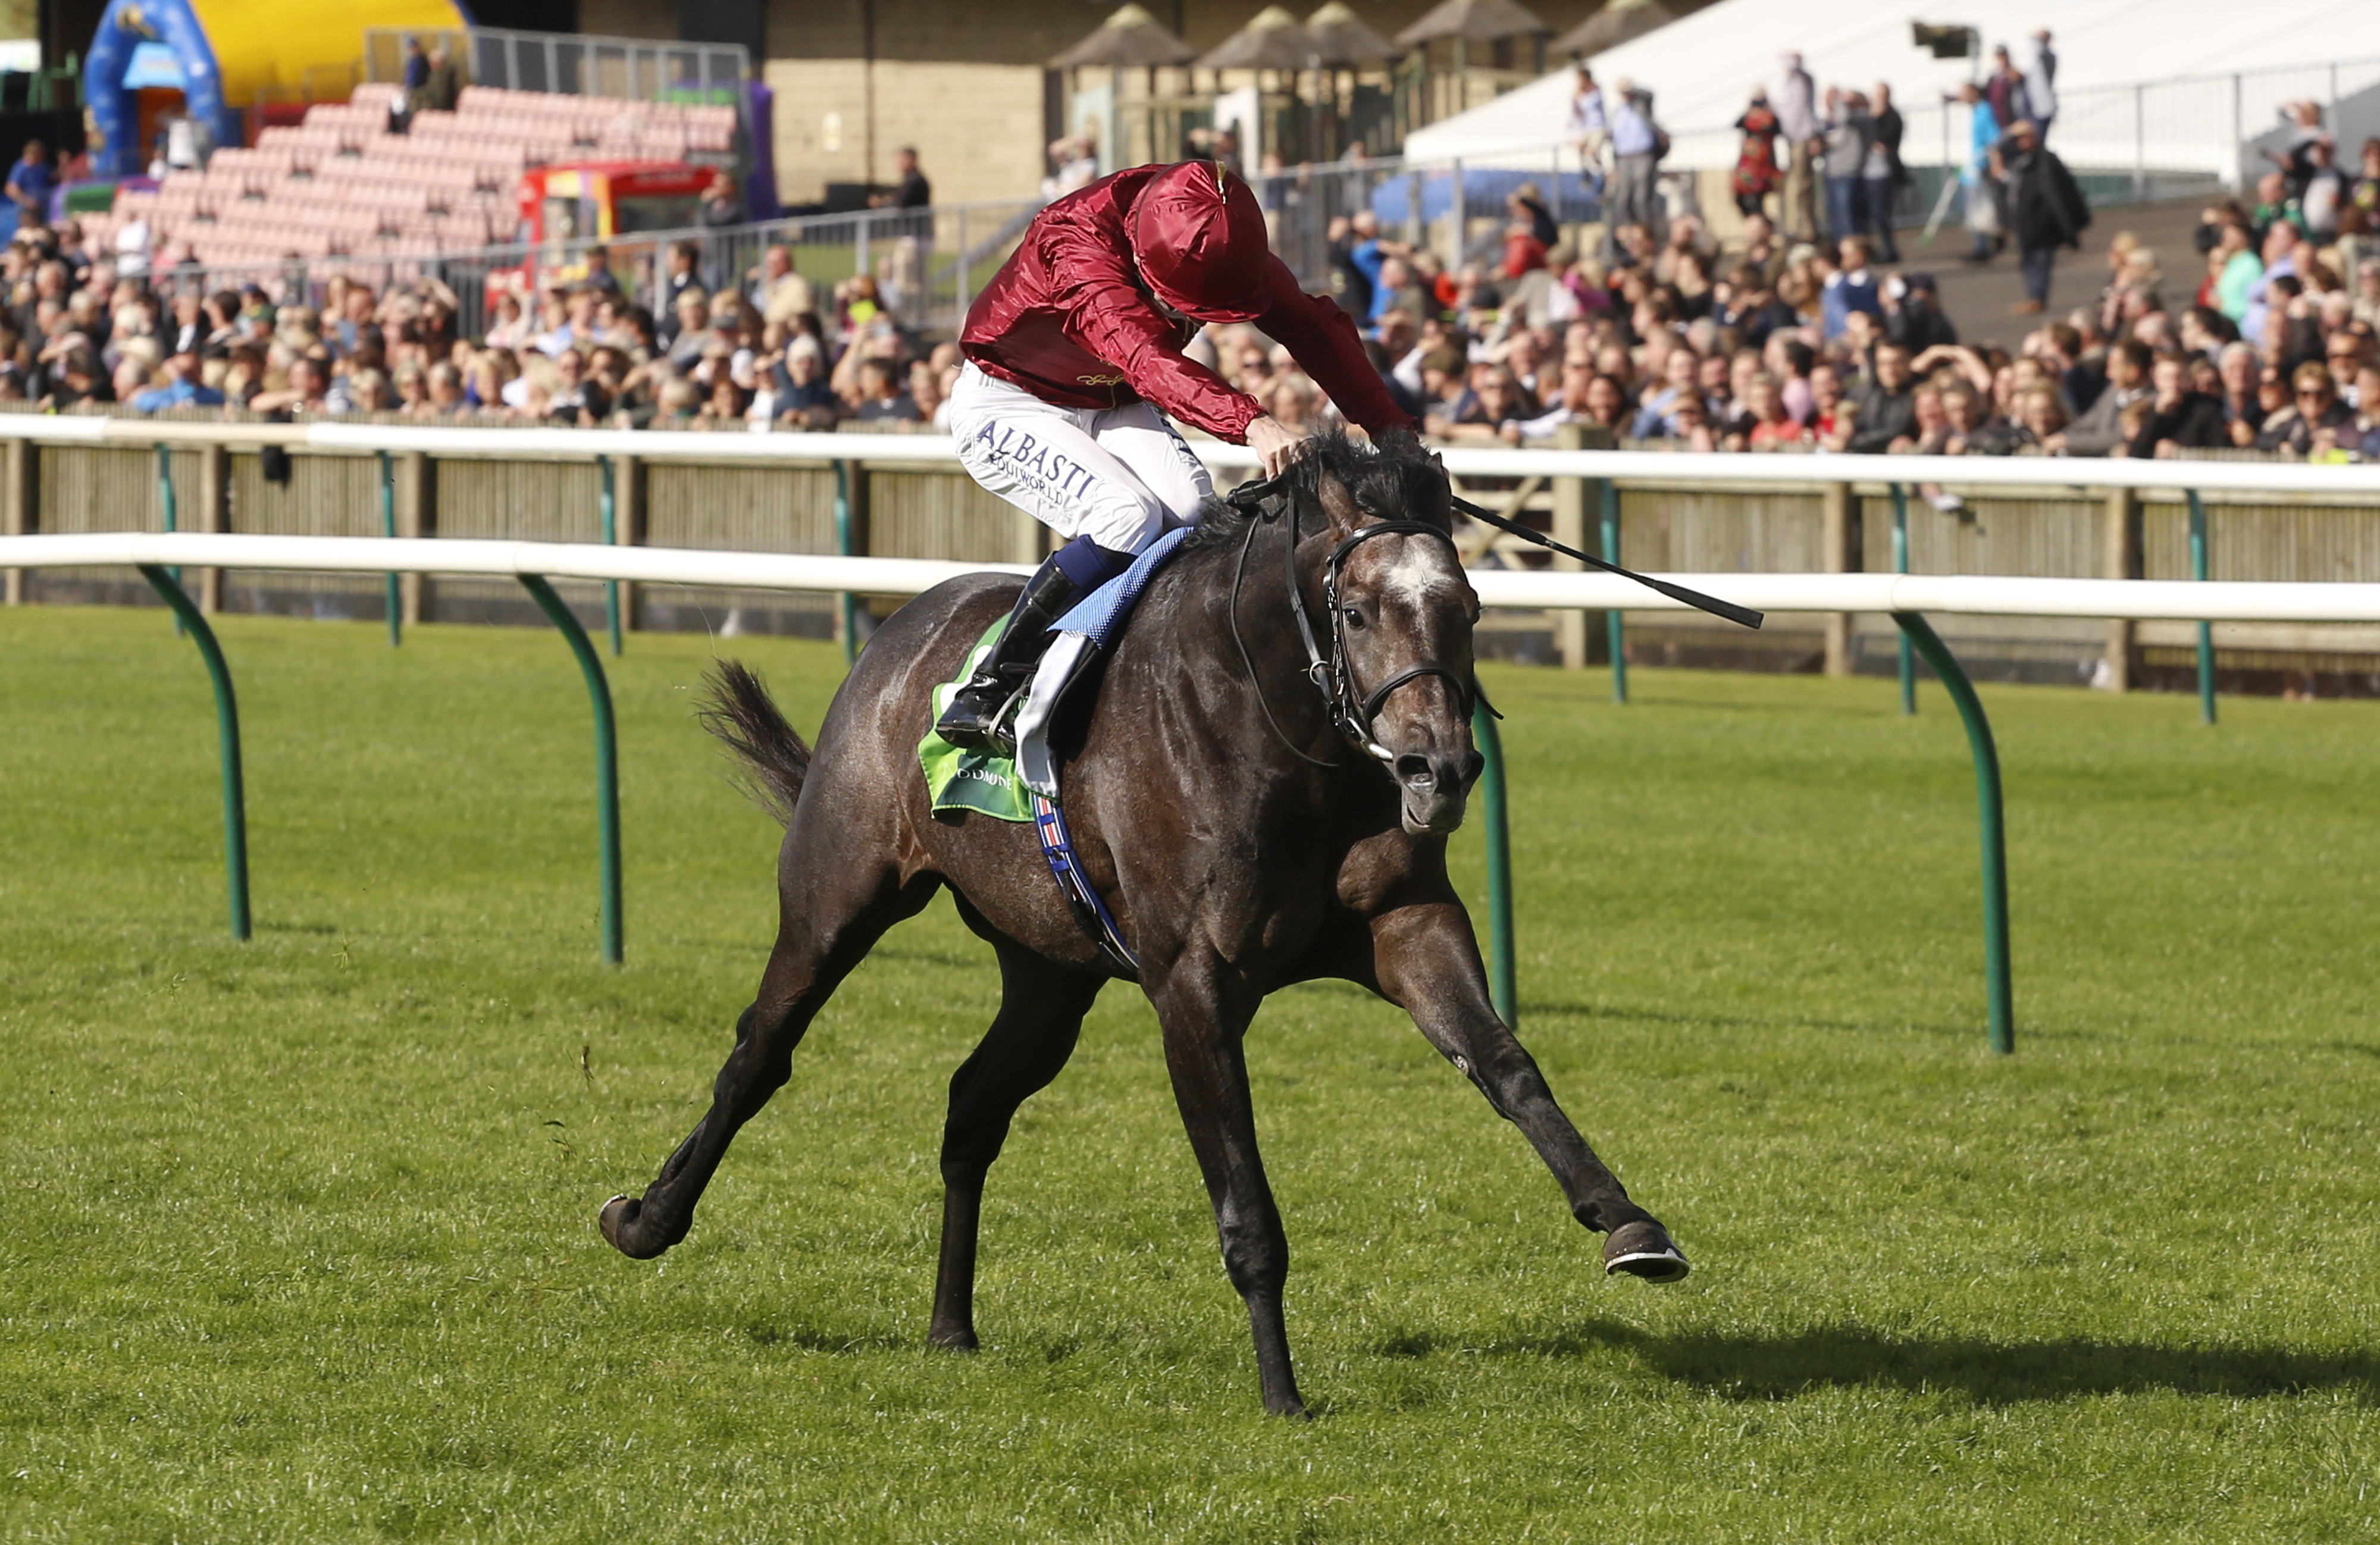 Roaring Lion will be hard to beat at Ascot